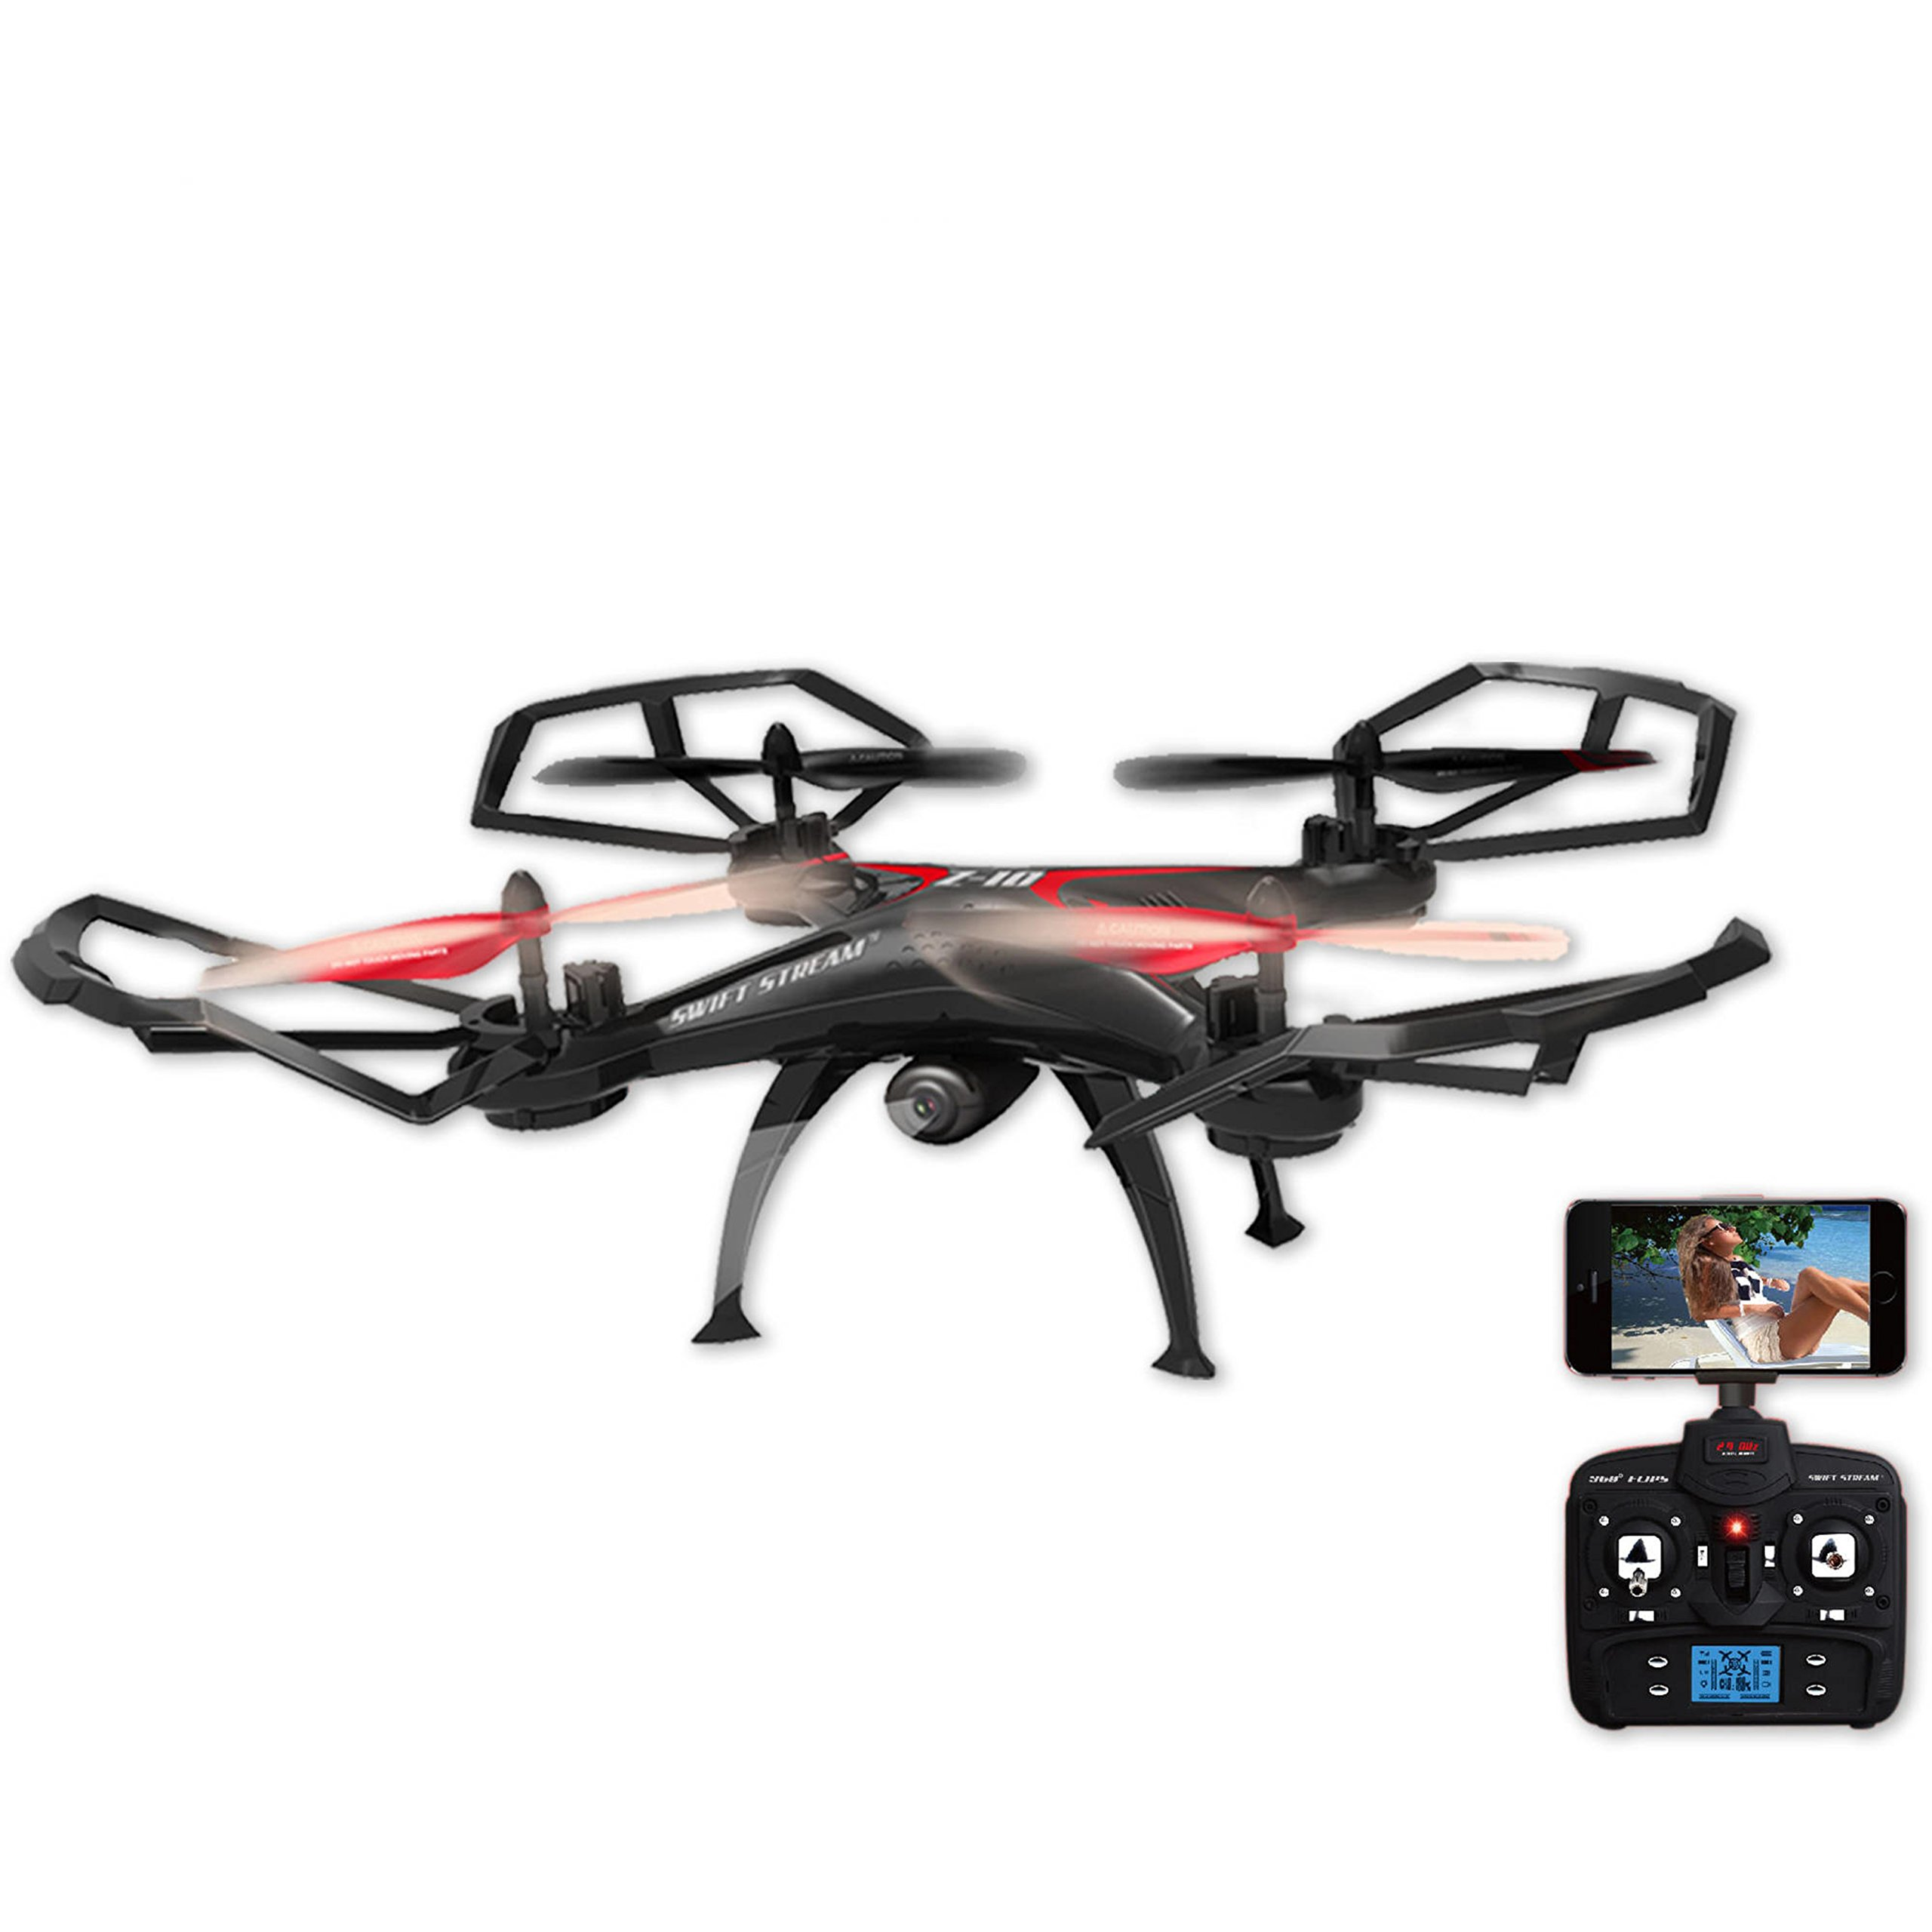 5-Channel Control 2.4GHz Remote Control Quadcopter Drone with Wifi Camera by Z-10 Black